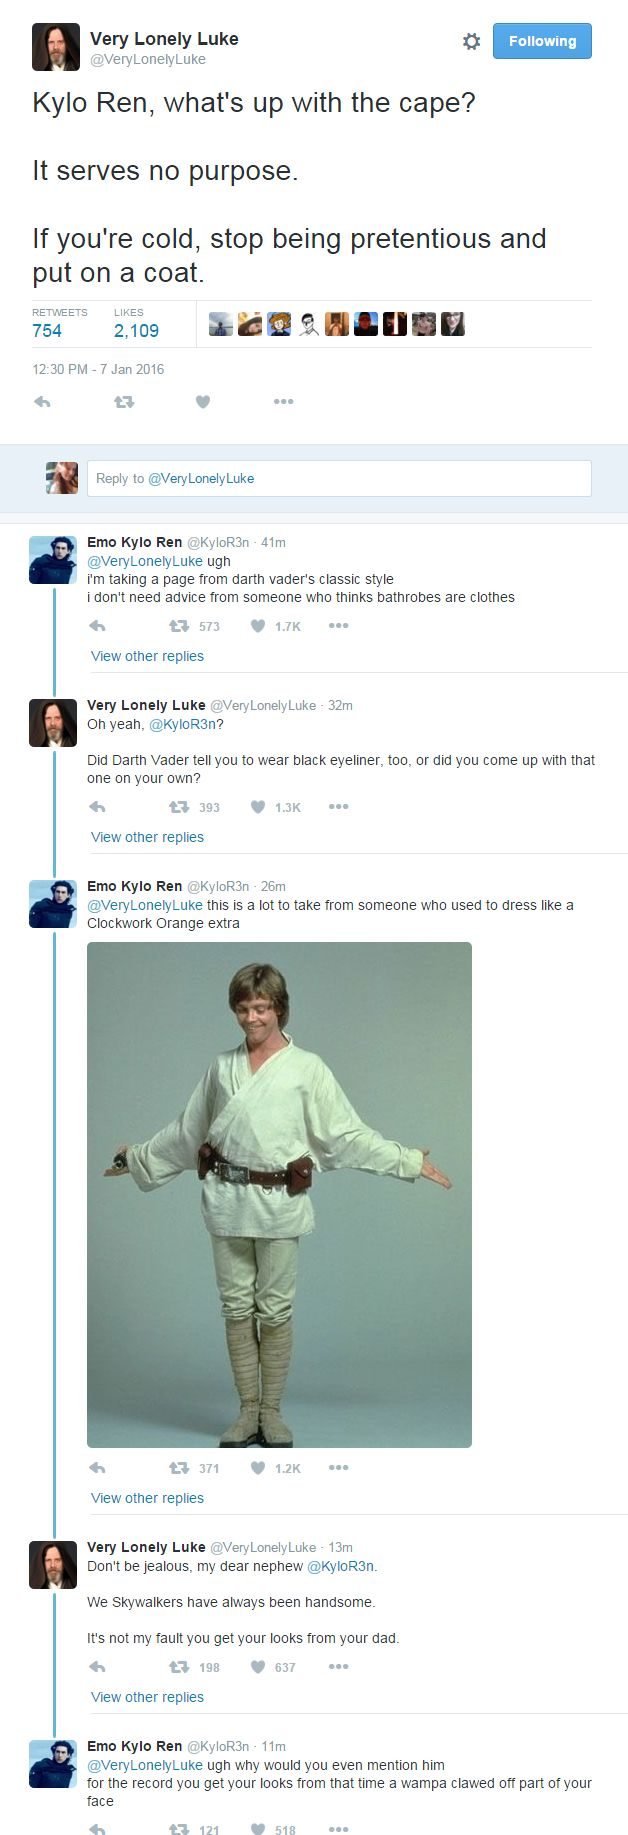 Twitter accounts @ VeryLonelyLuke (Very Lonely Luke) and @ KyloR3n (Emo Kylo Ren) converse and the results are glorious | Star Wars